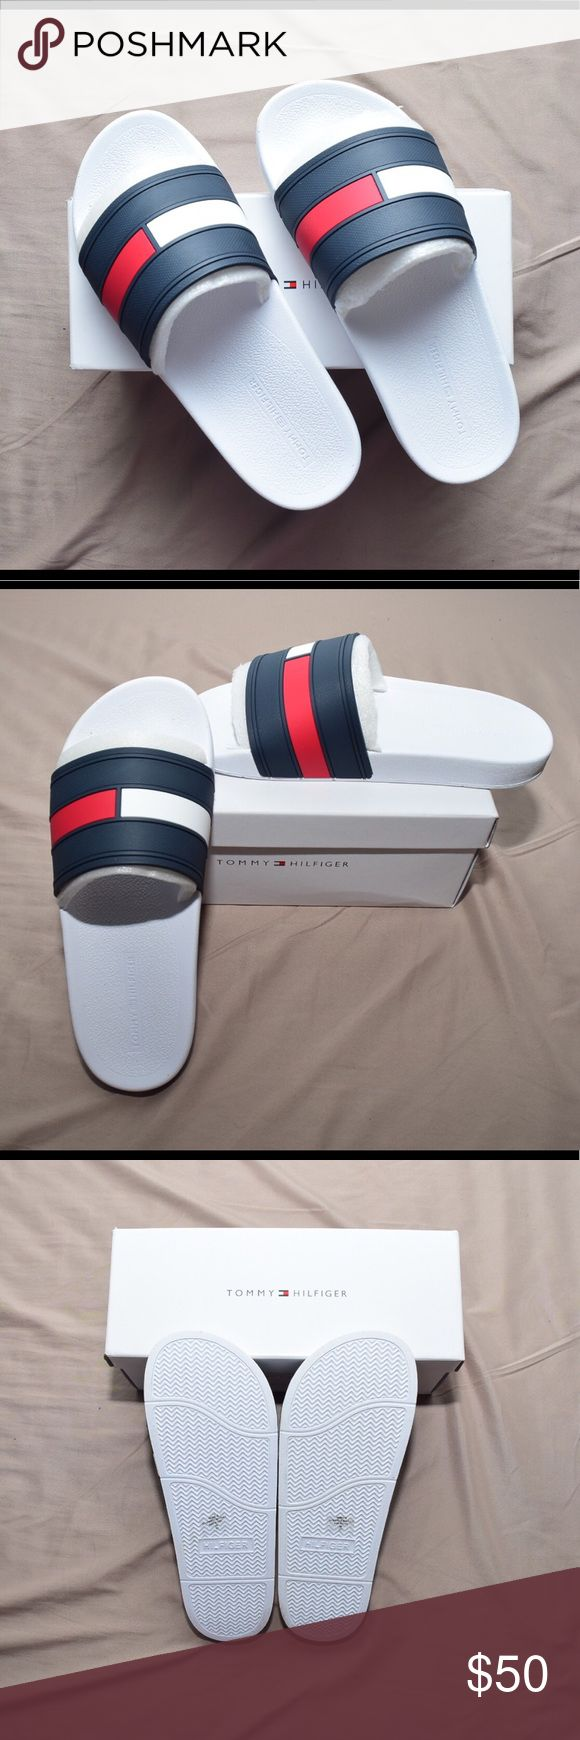 Tommy Hilfiger Mens Slides NEW! Too big for me. Never worn and includes box. Tommy Hilfiger Shoes Sandals & Flip-Flops